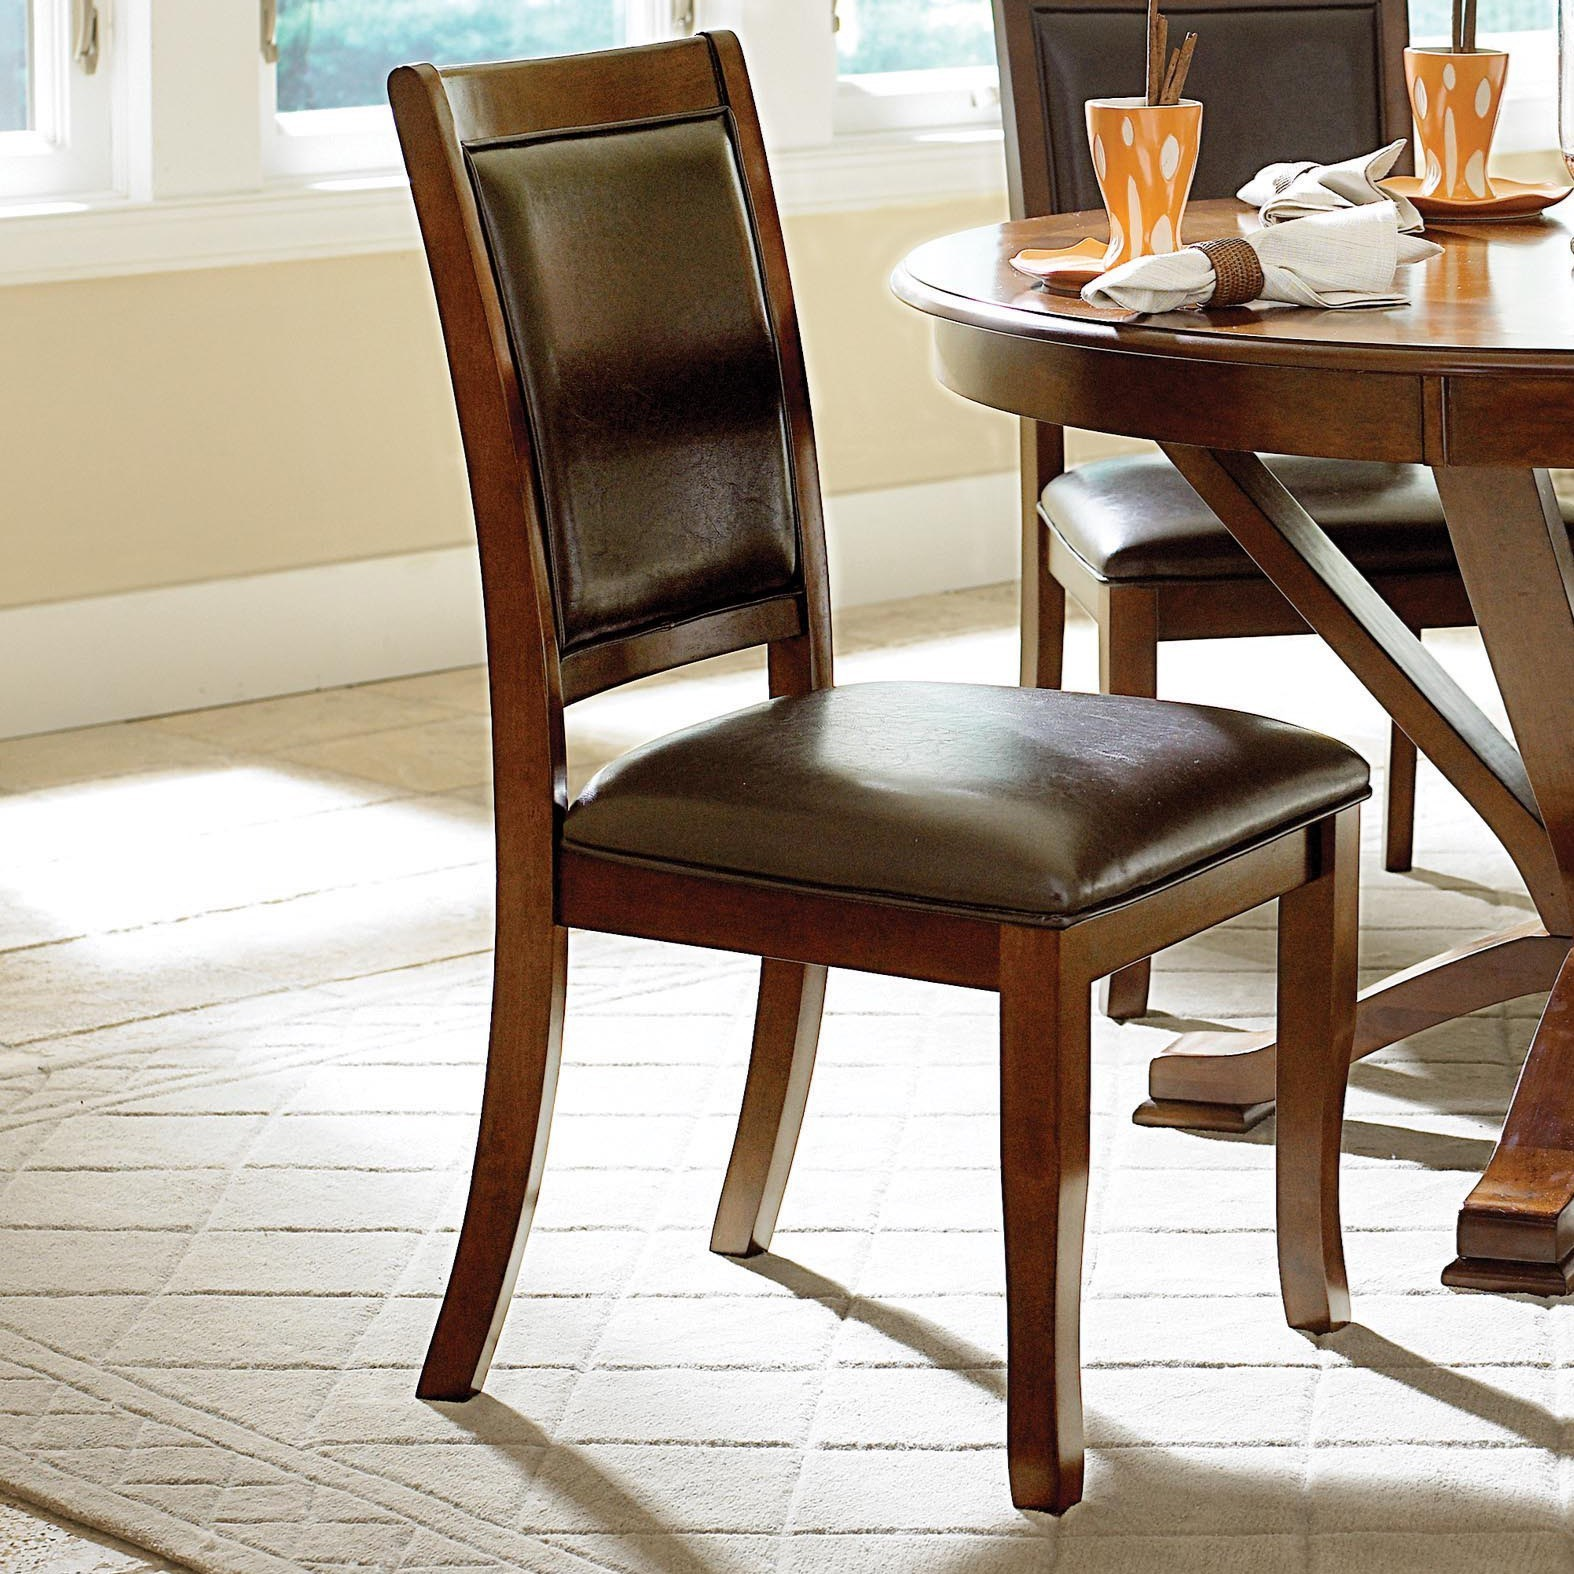 Transitional Dining Room Sets: Homelegance Helena Transitional Dining Side Chair With